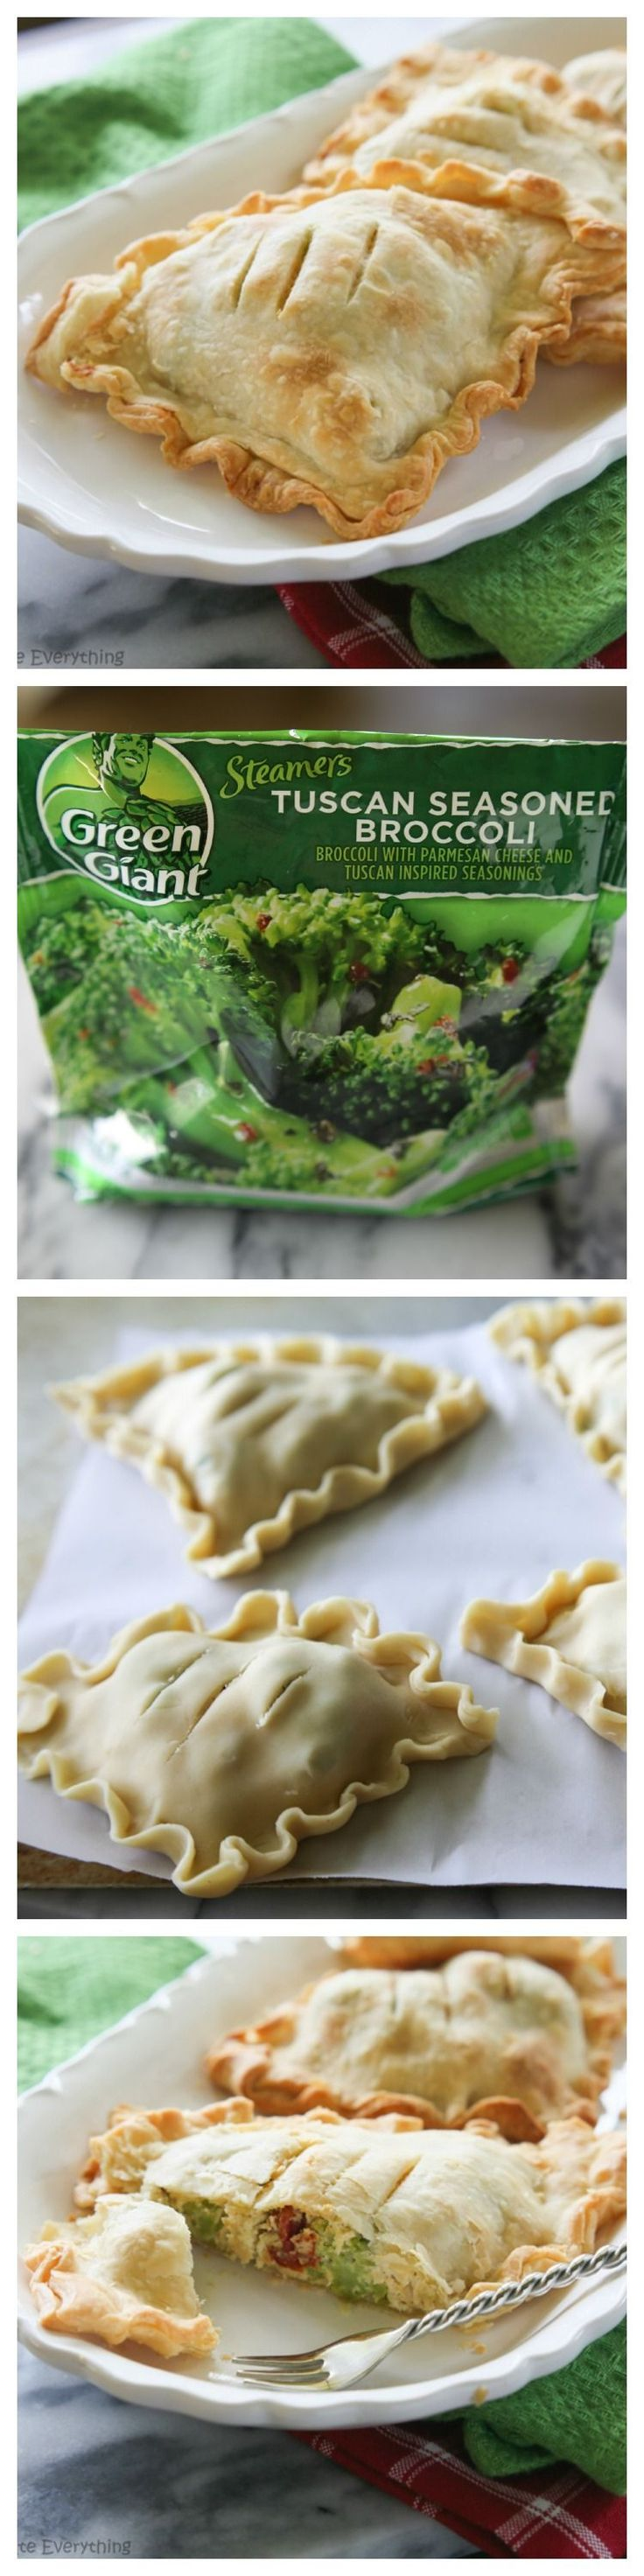 194 best Kid Friendly Recipes images on Pinterest